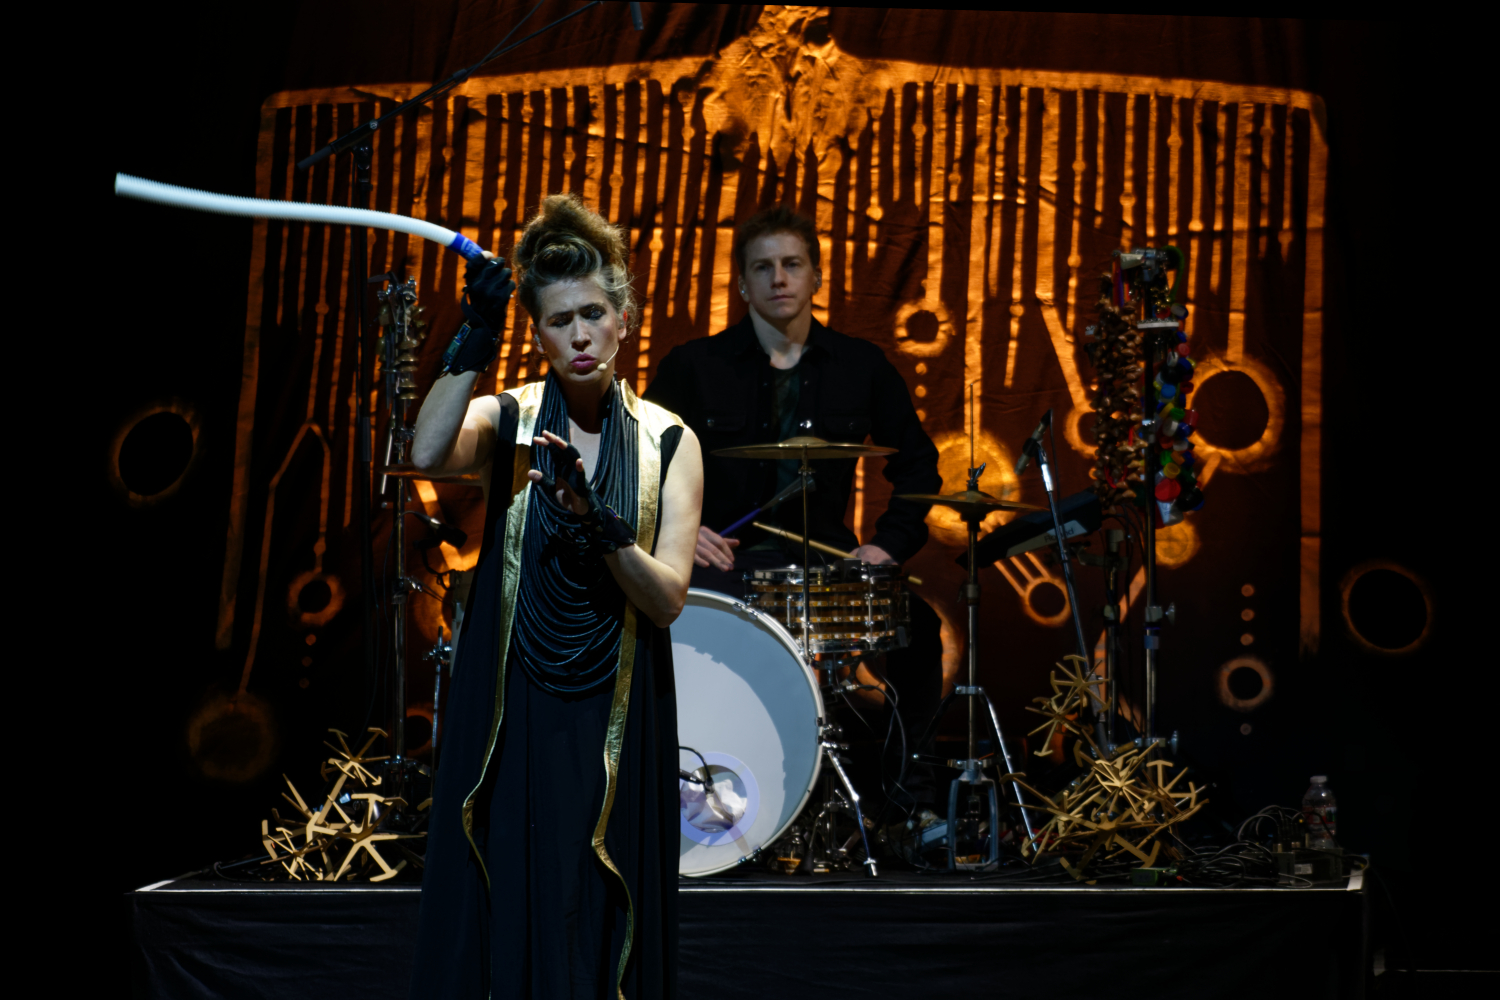 20190608 114 The Masonic - Imogen Heap.jpg